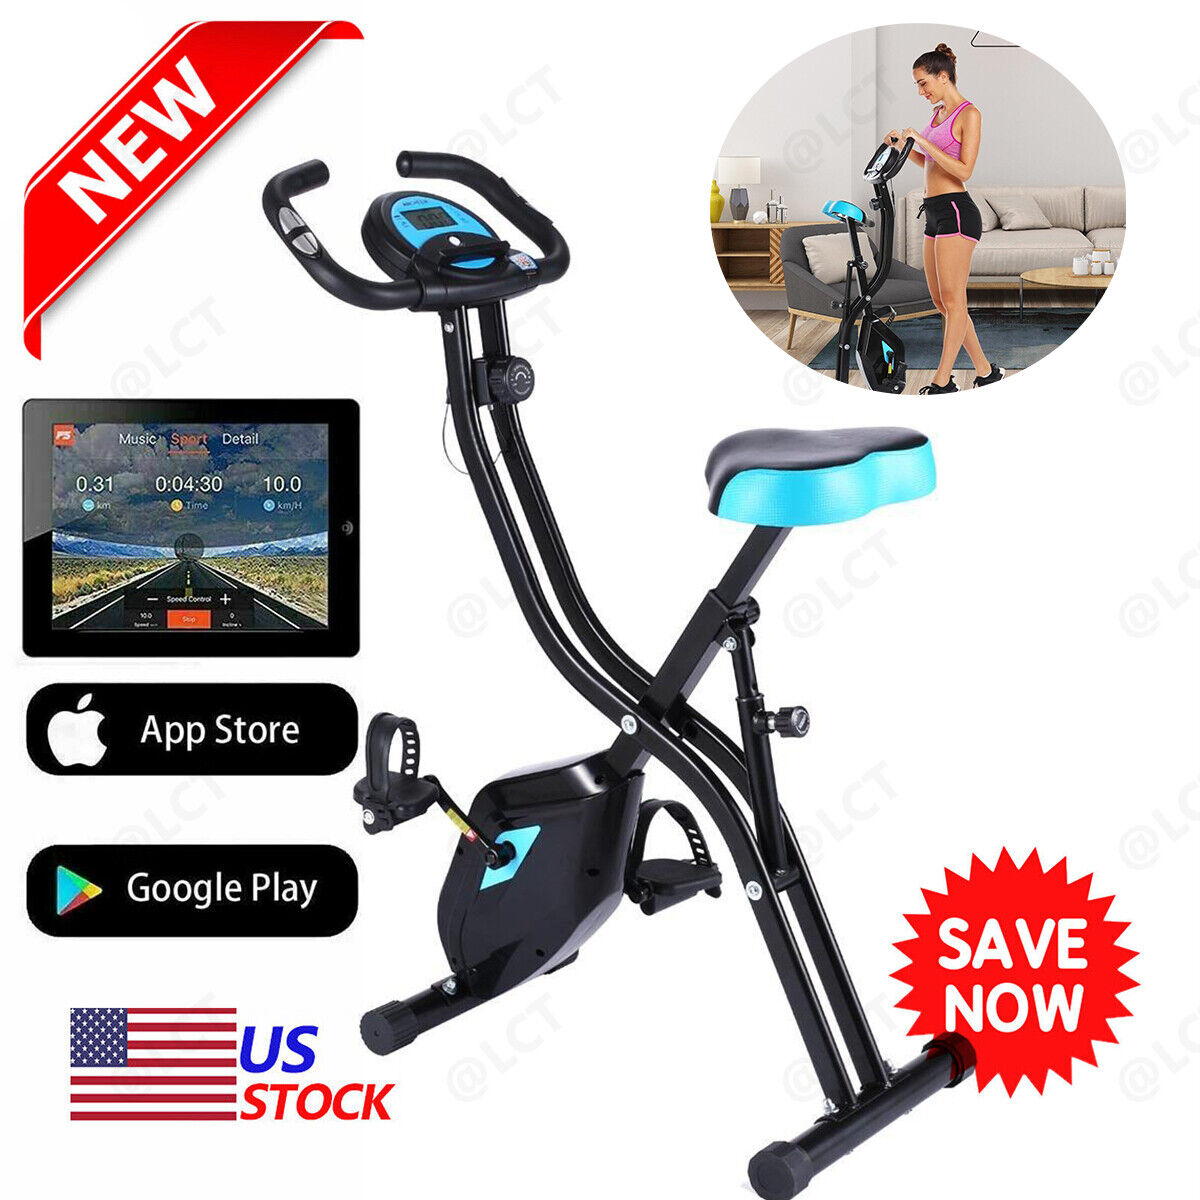 3Types 2 in1 Folding Stationary Upright Indoor Cycling Exerc